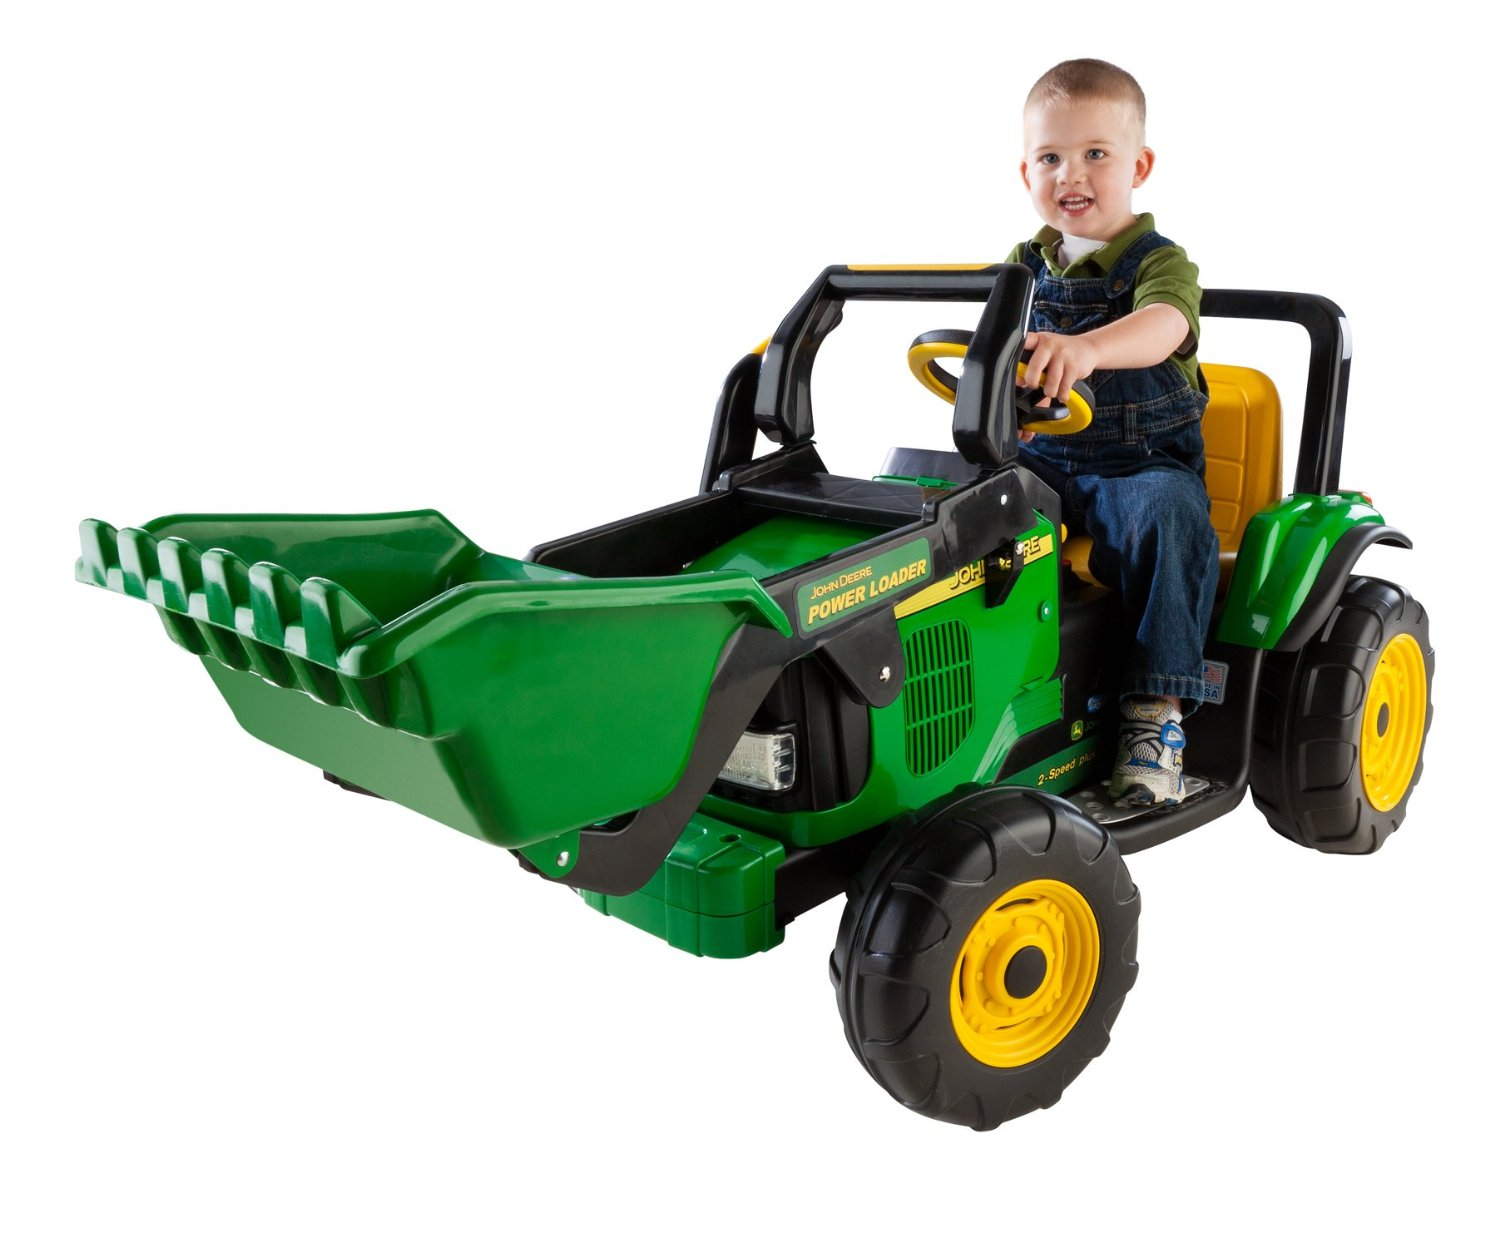 Peg Perego John Deere Power Loader Battery Powered Ride-On Toy